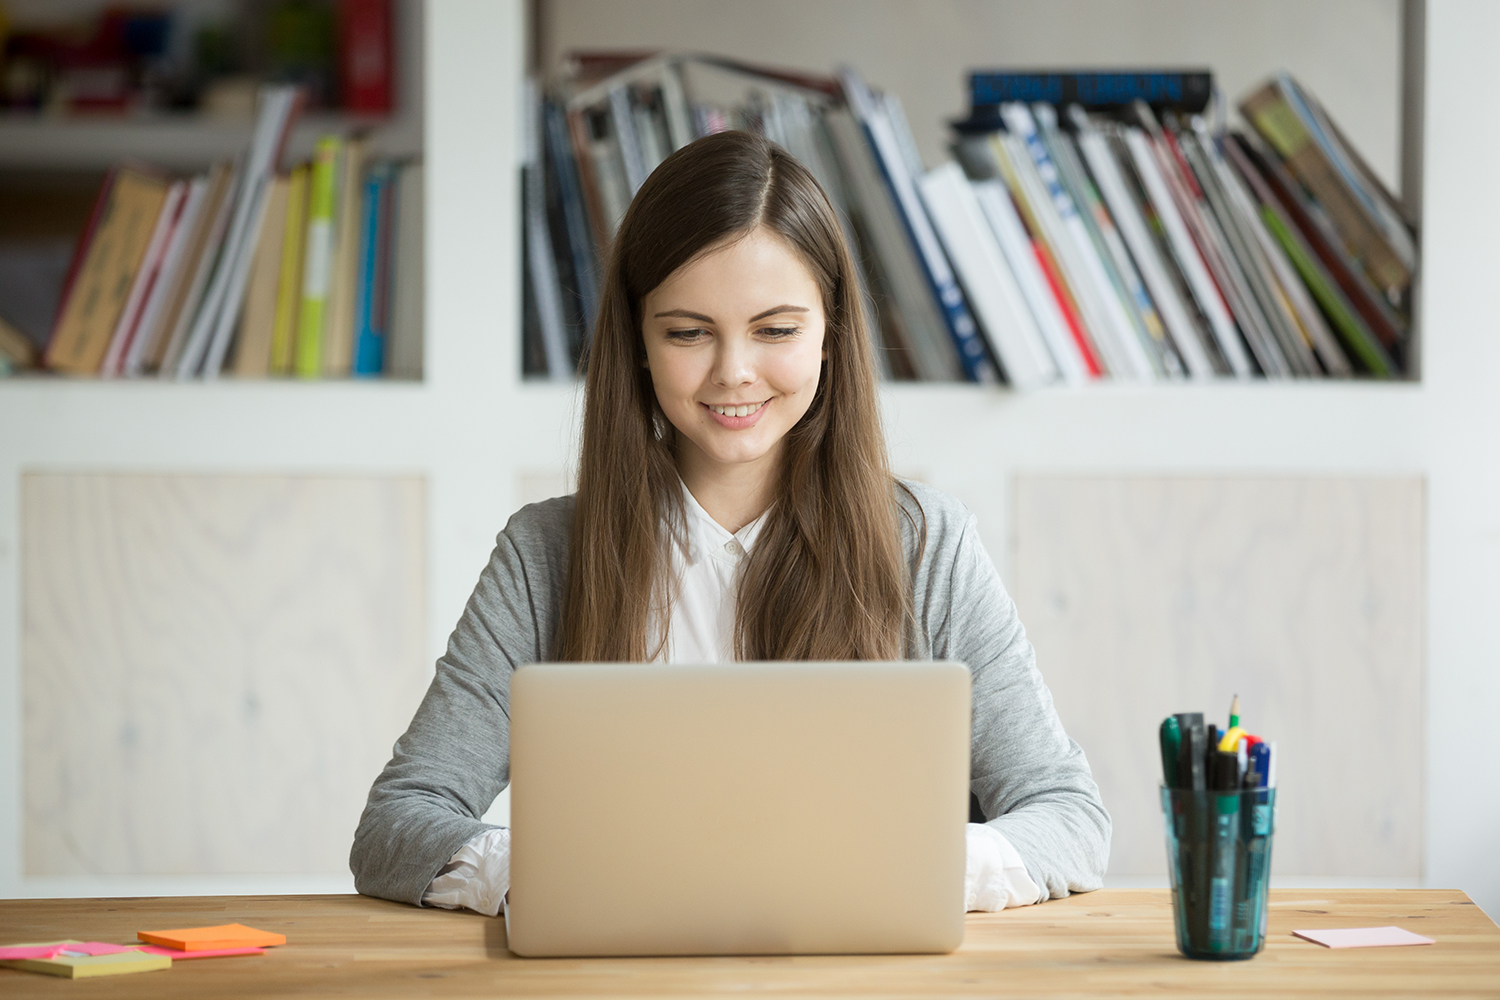 Smiling girl using laptop, student studying at home, digital education, teenager typing on computer browsing web, blogger influencer chatting online in social networks, woman working on pc in office